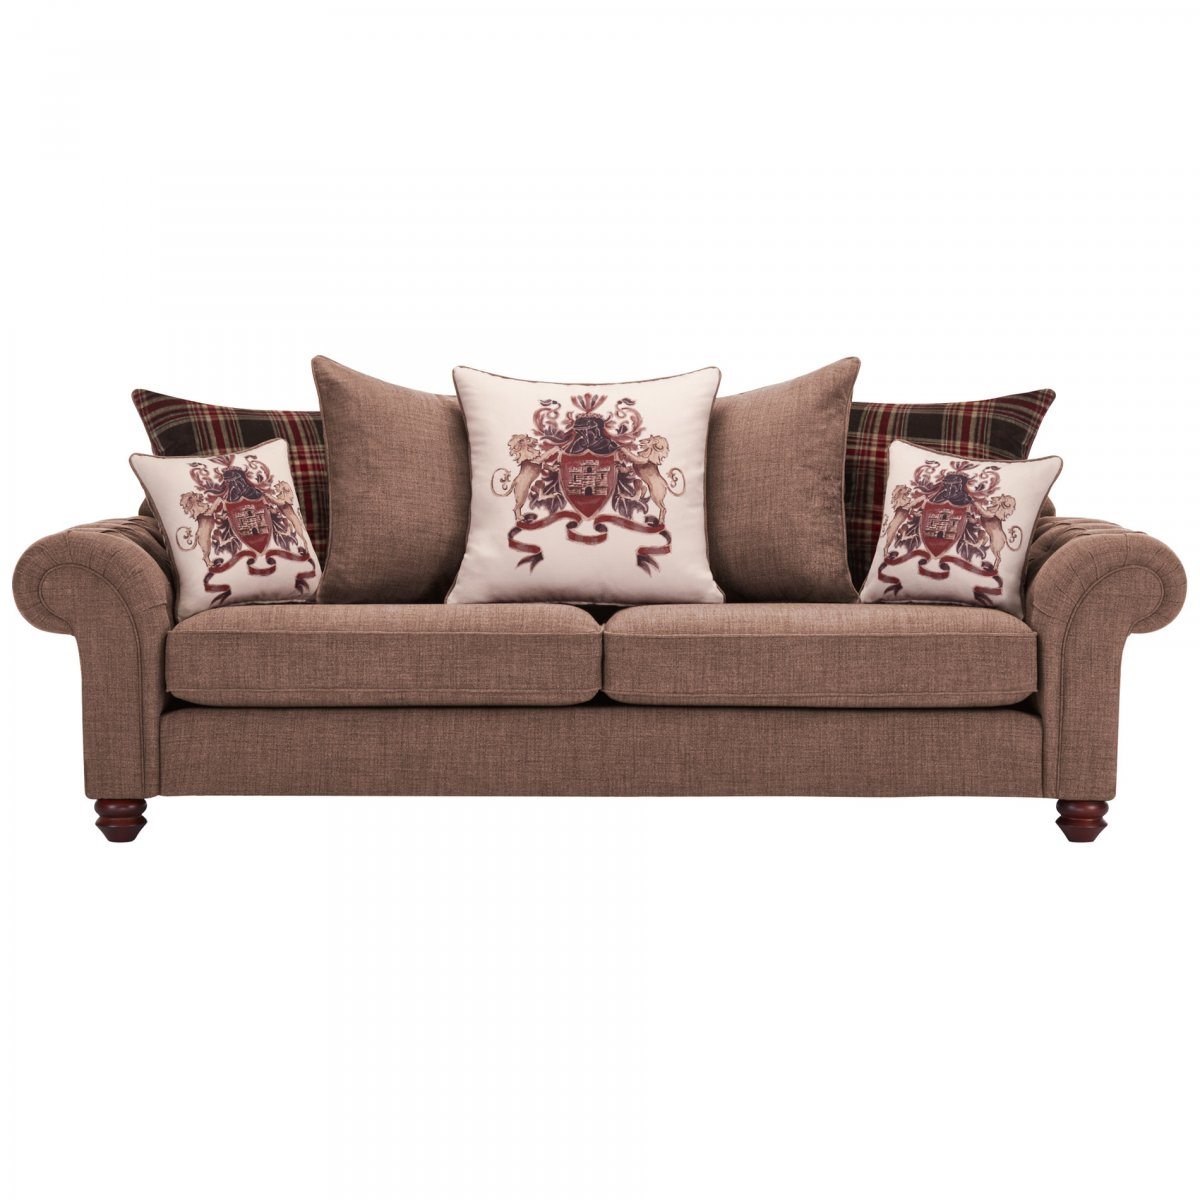 Sandringham 4 Seater Pillow Back Sofa in Coffee + Scatters